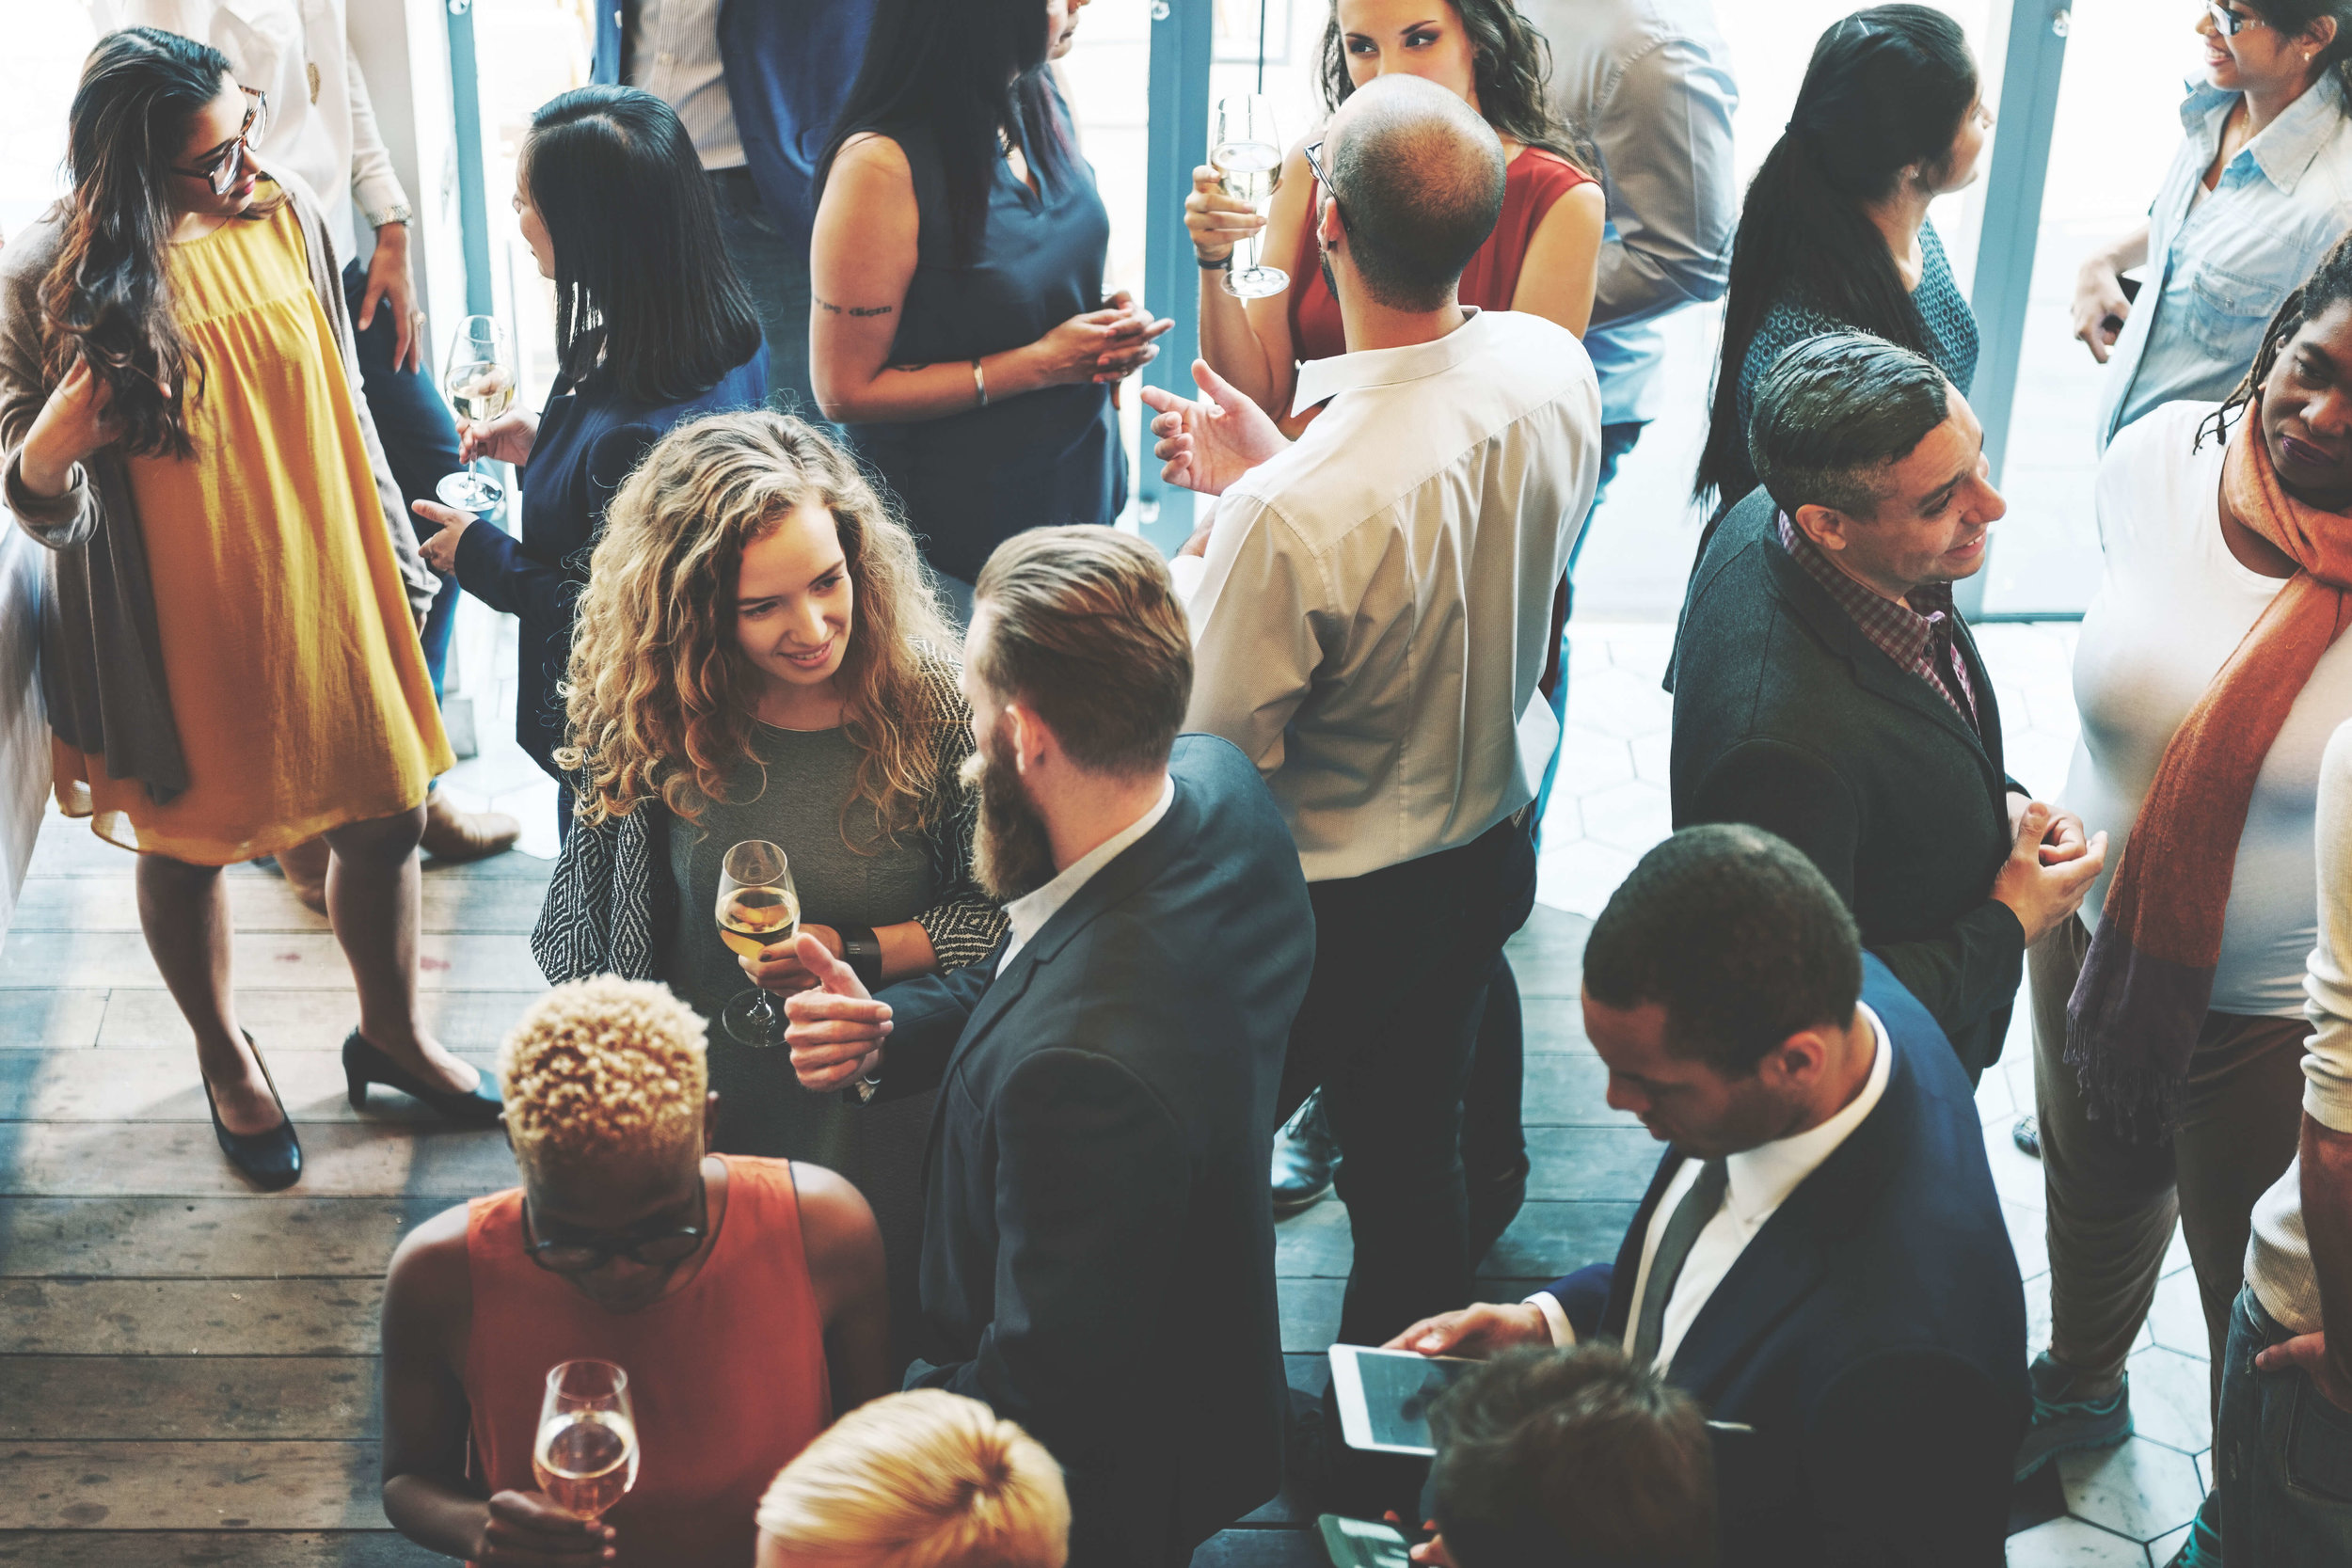 BRAND IT - From product launches to client appreciation parties, House of R can showcase your brand propelling you to success.